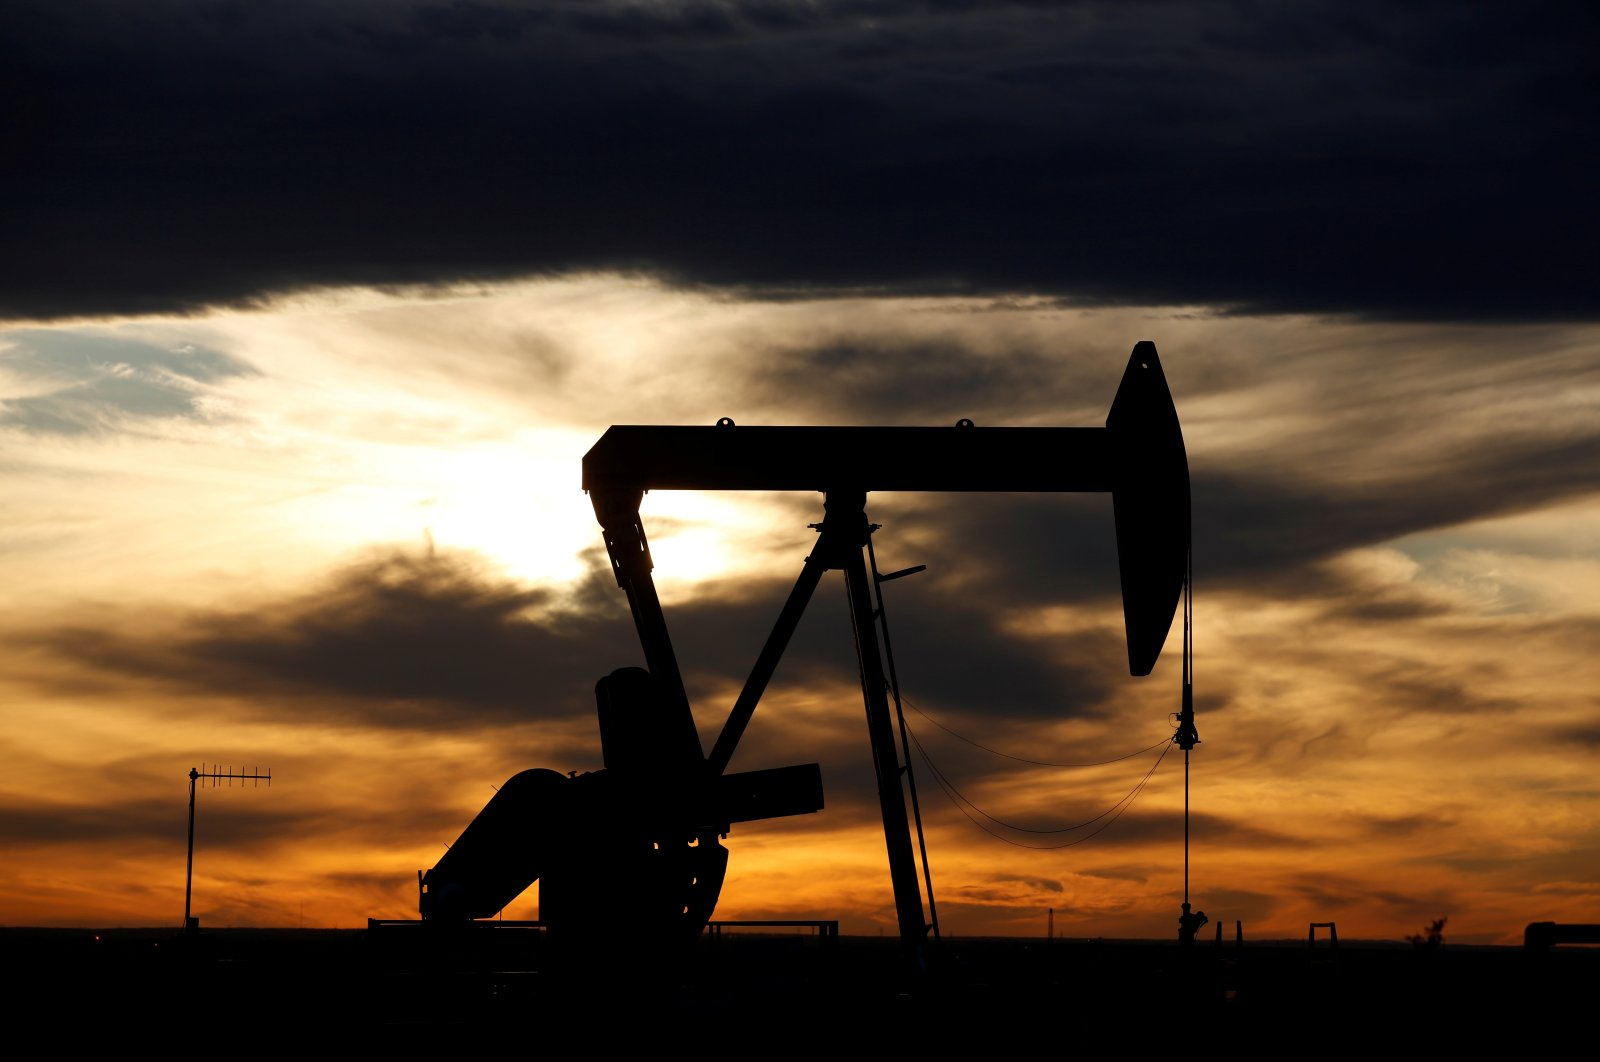 The sun sets behind a crude oil pump jack on a drill pad in the Permian Basin in Loving County, Texas, Nov. 24, 2019. (Reuters Photo)